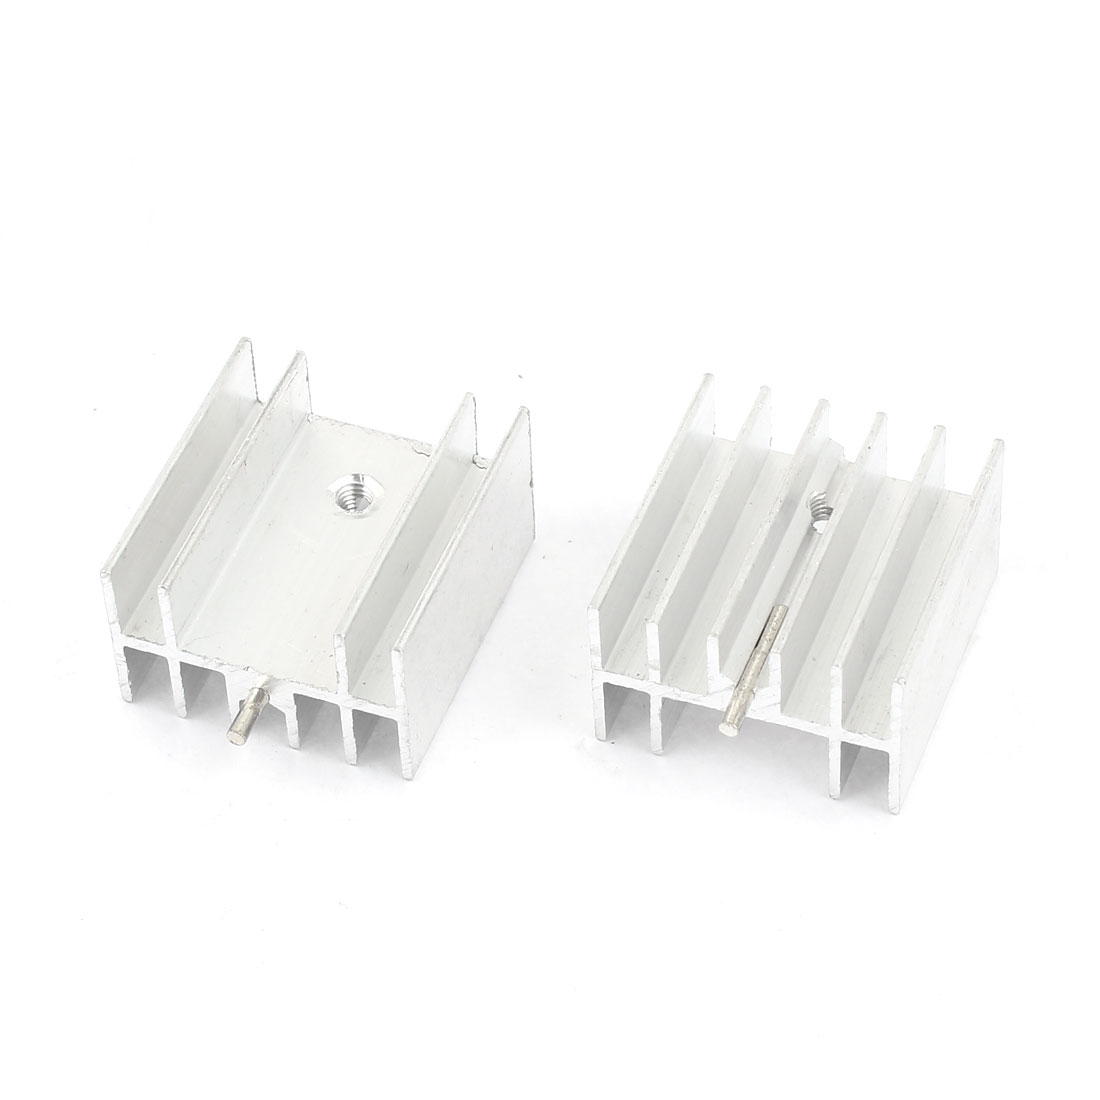 2 Pcs Silver Tone Aluminum Heat Sink Heatsink 23x16x25mm for TO220 Transistor